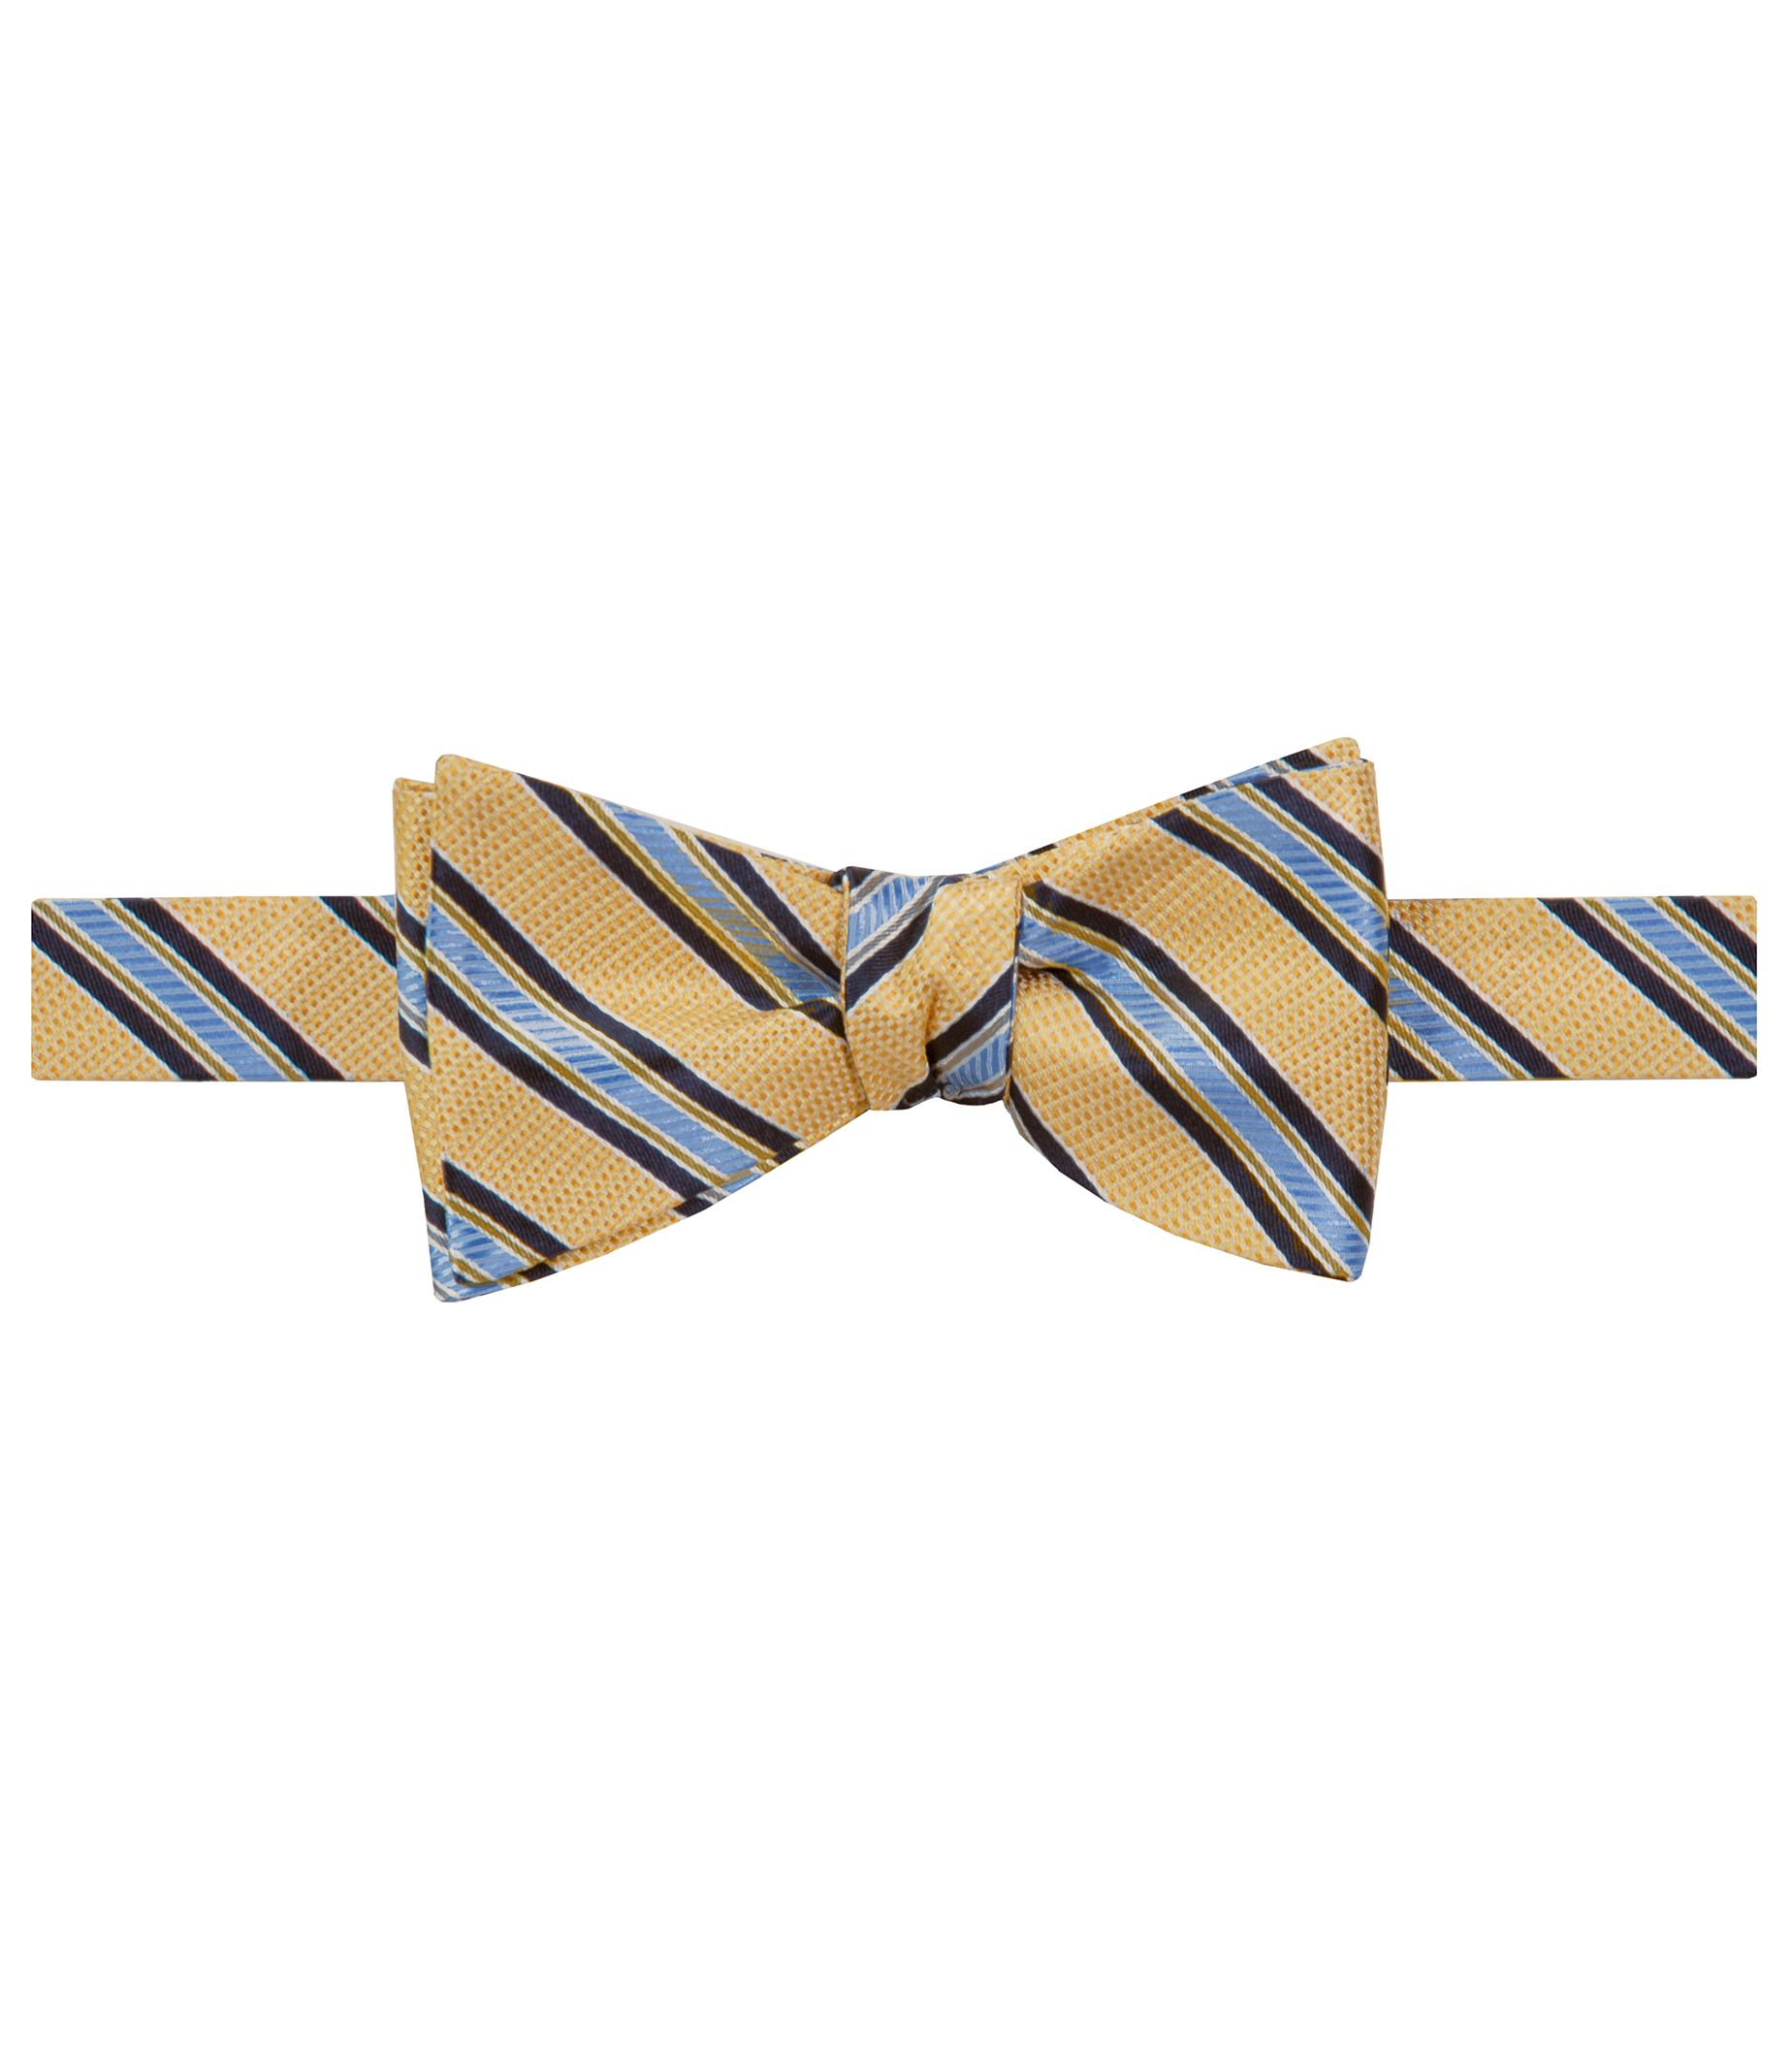 Executive Track Stripe on Textured Ground Bowtie